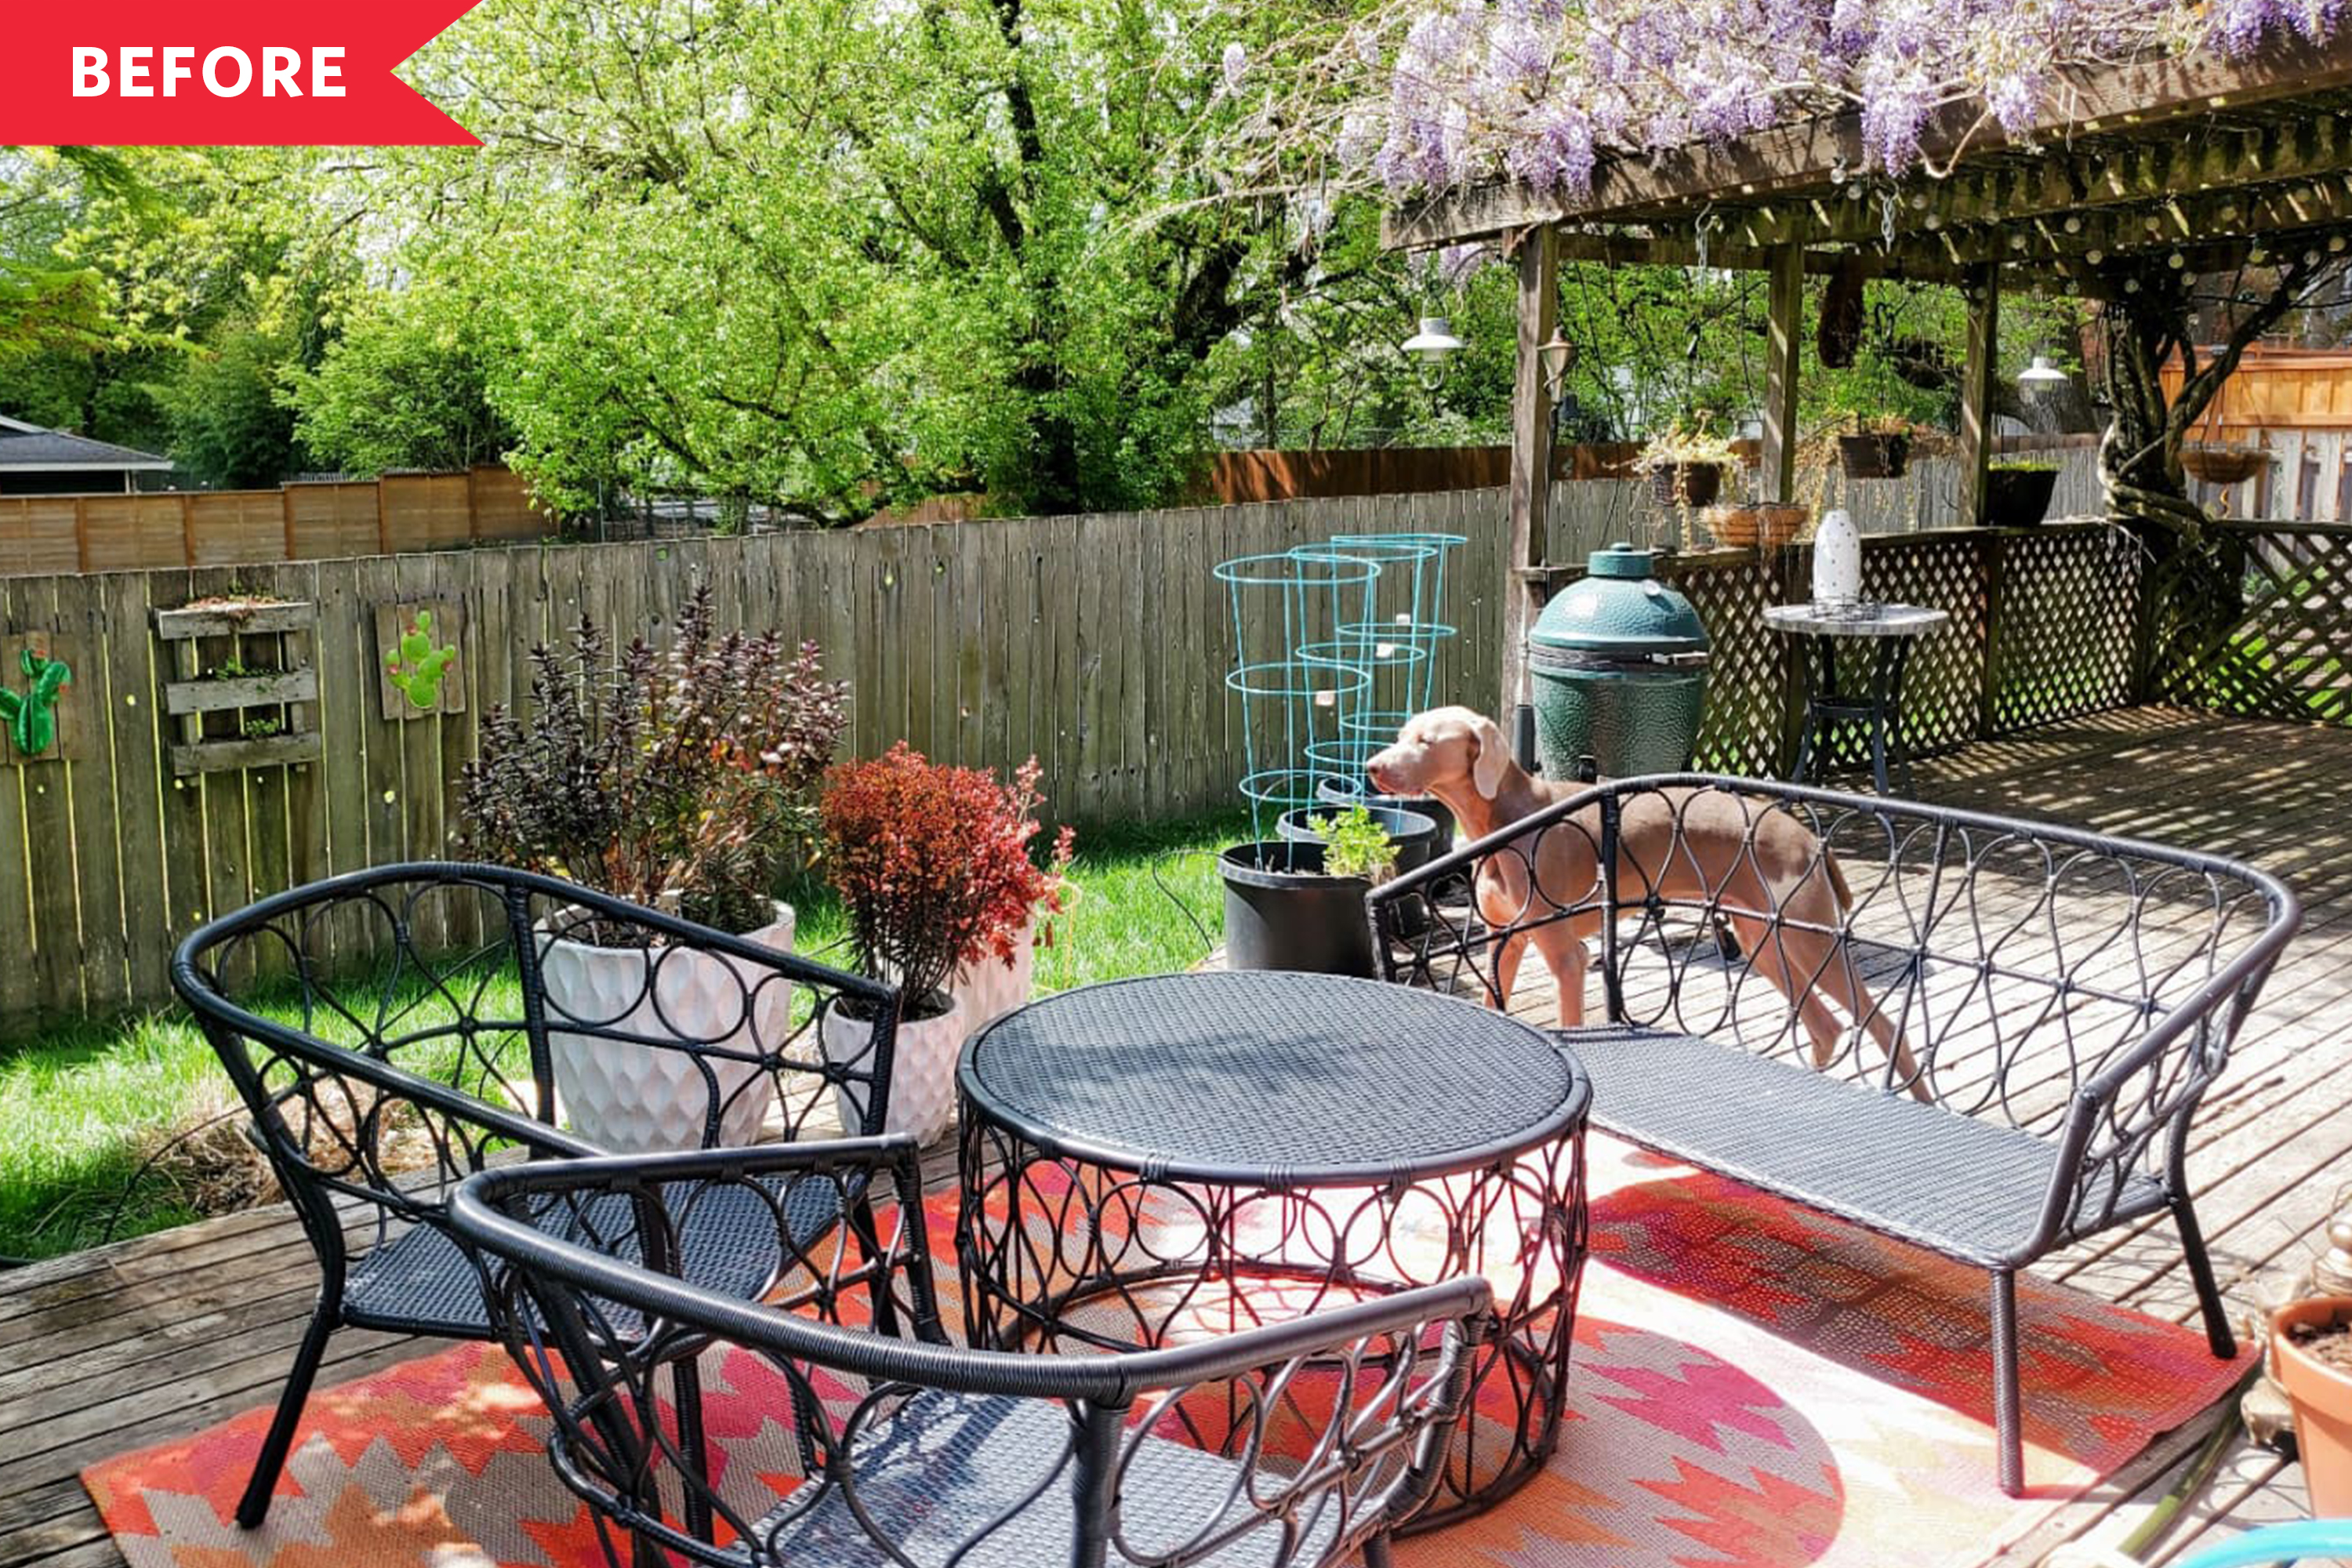 Before and After: A Patio with a Rotten Deck Becomes a Tropical Oasis for $3,500